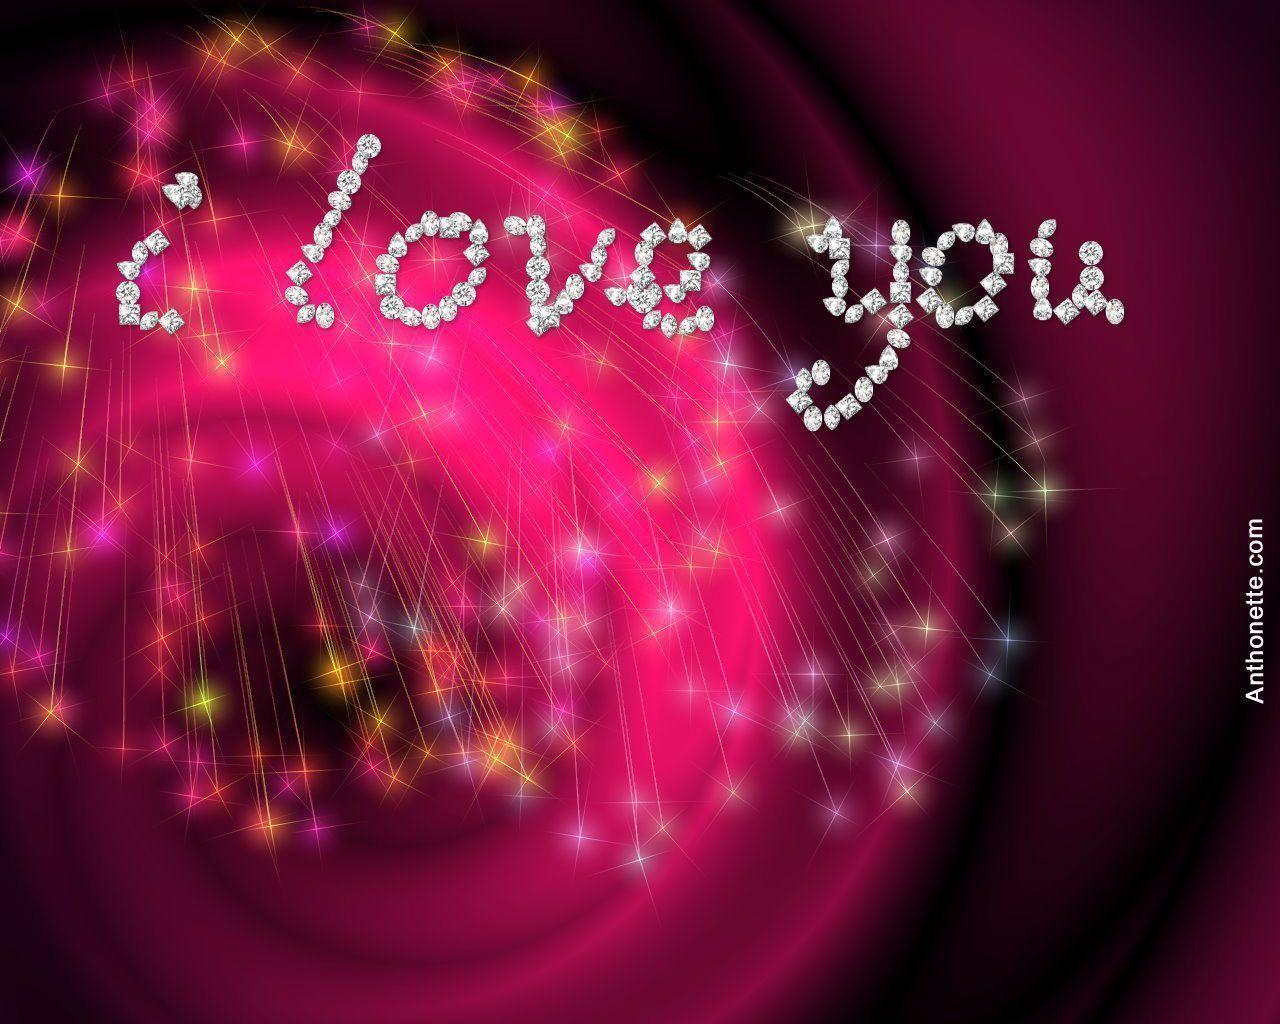 Wallpaper download in love - Love You 4 Hd Free 3d Desktop Wallpaper Pictures Download